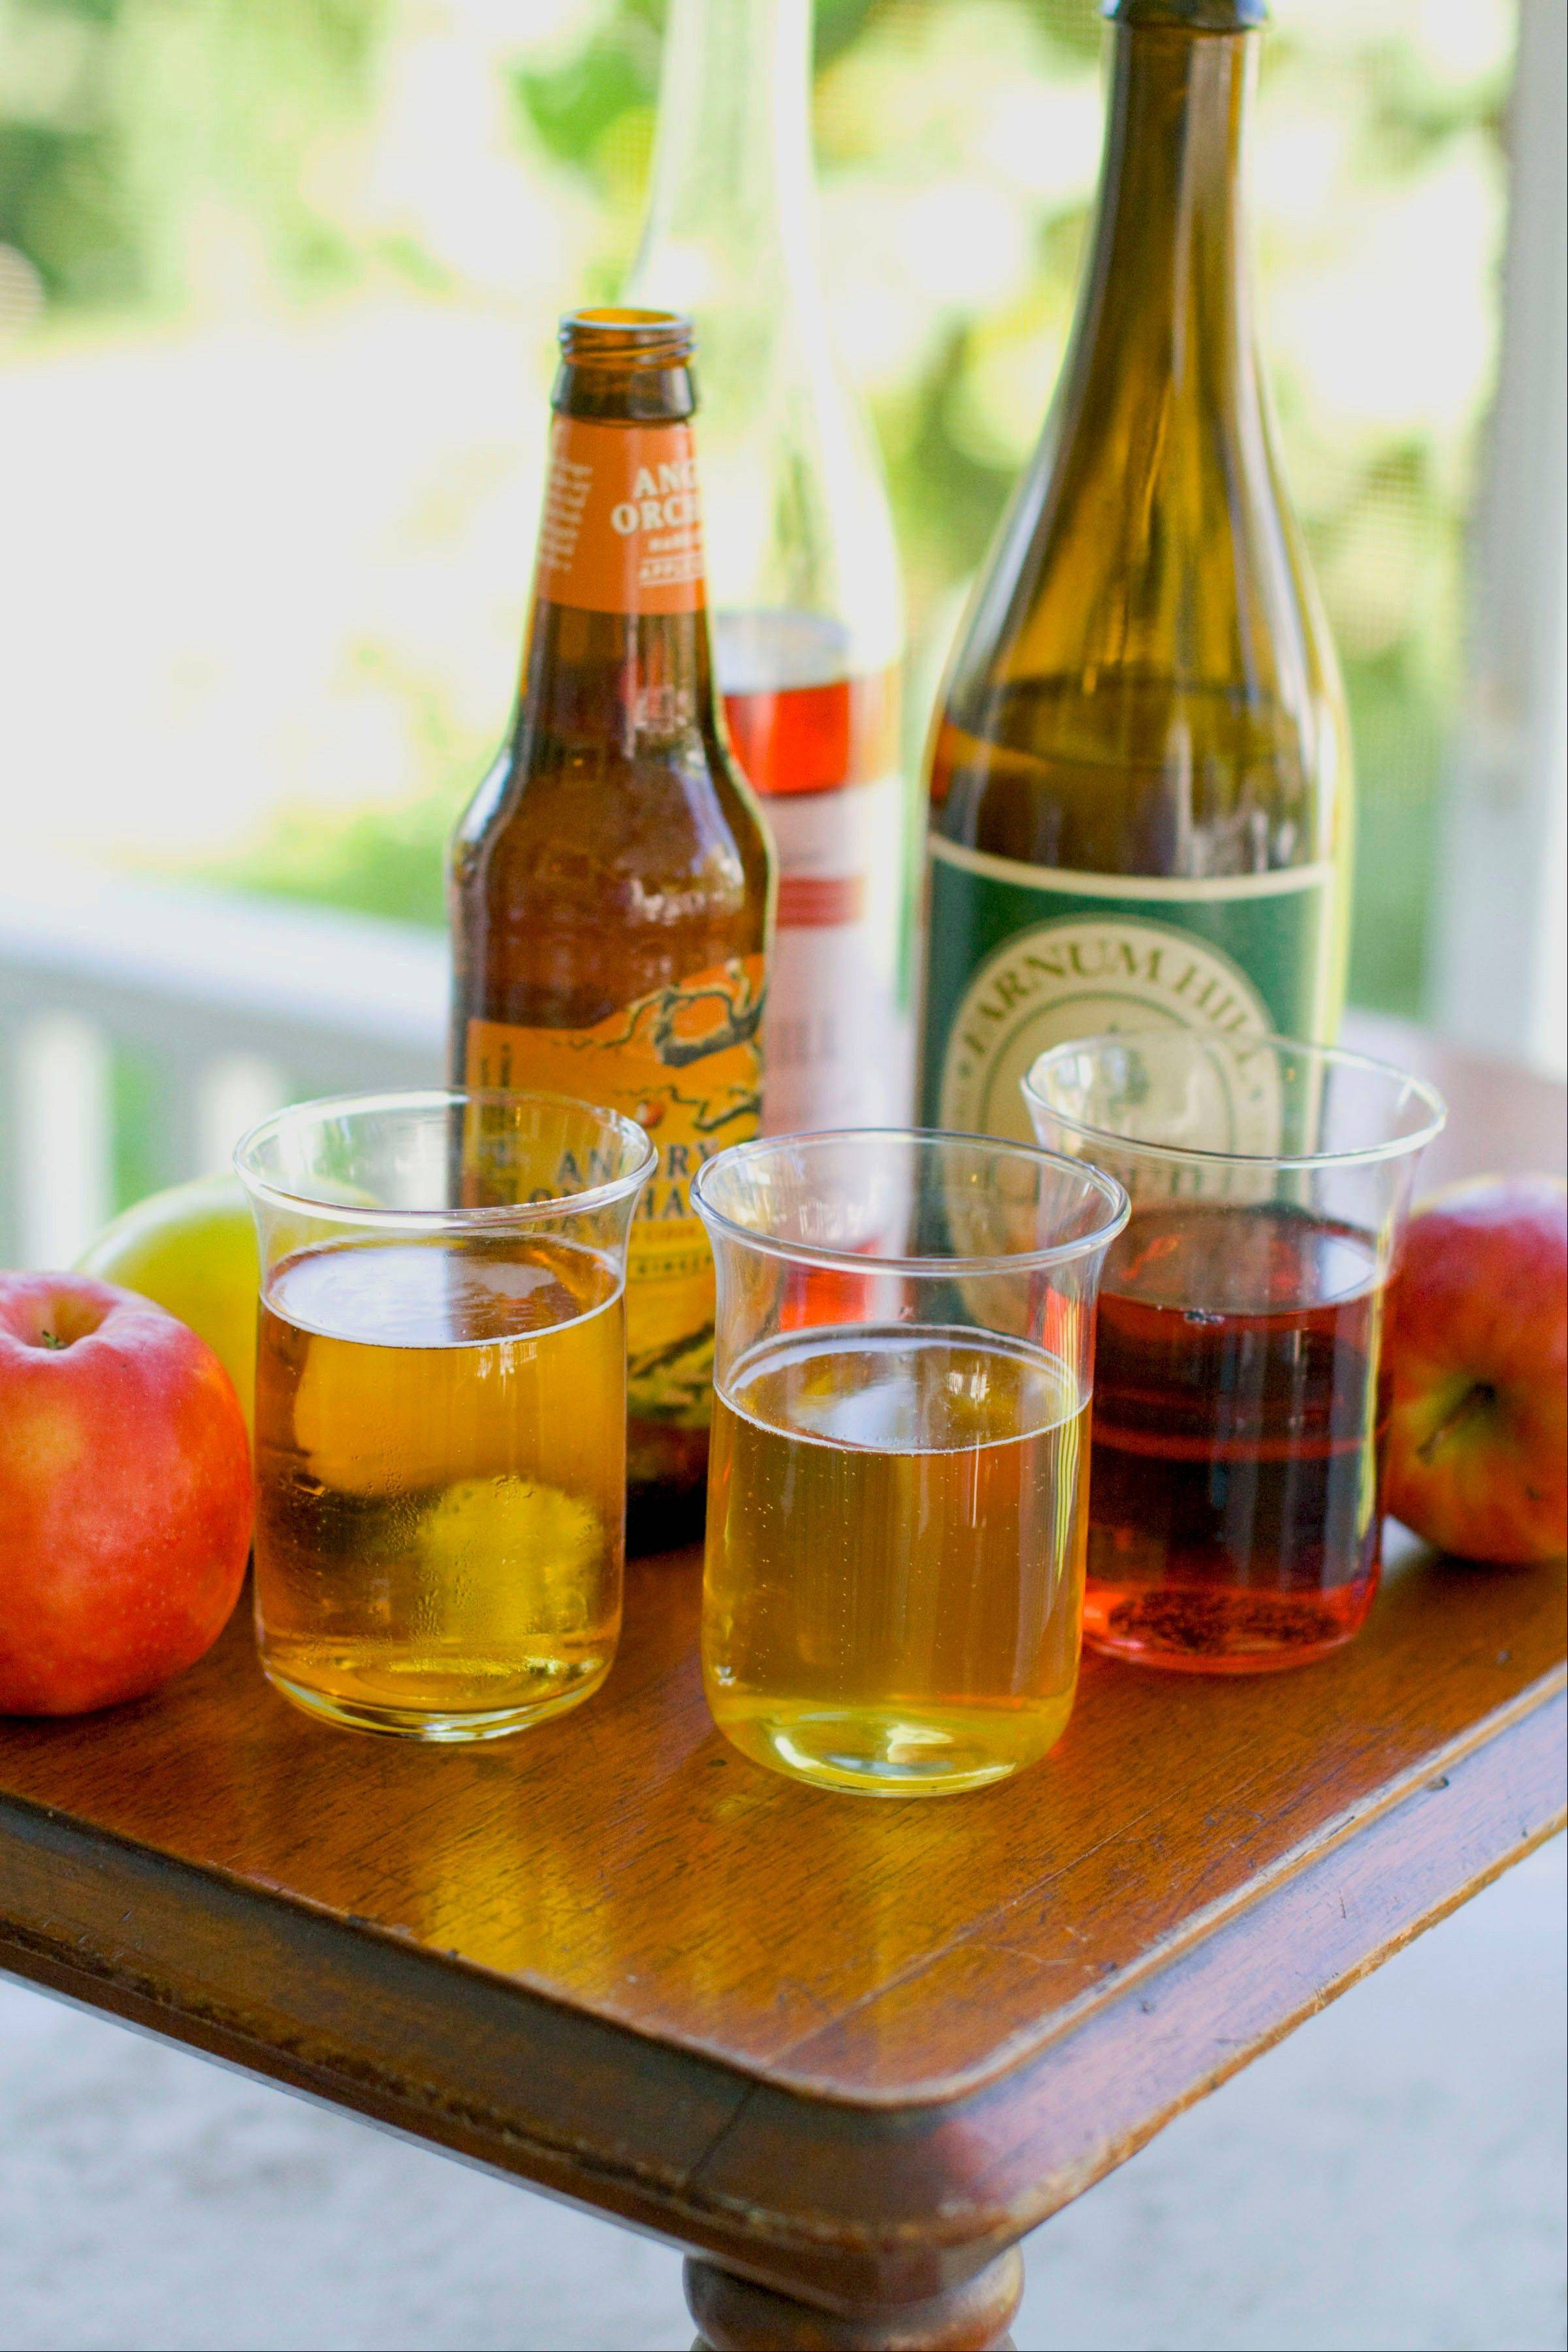 Sales of hard apple ciders have increased 50 percent from this time last year.